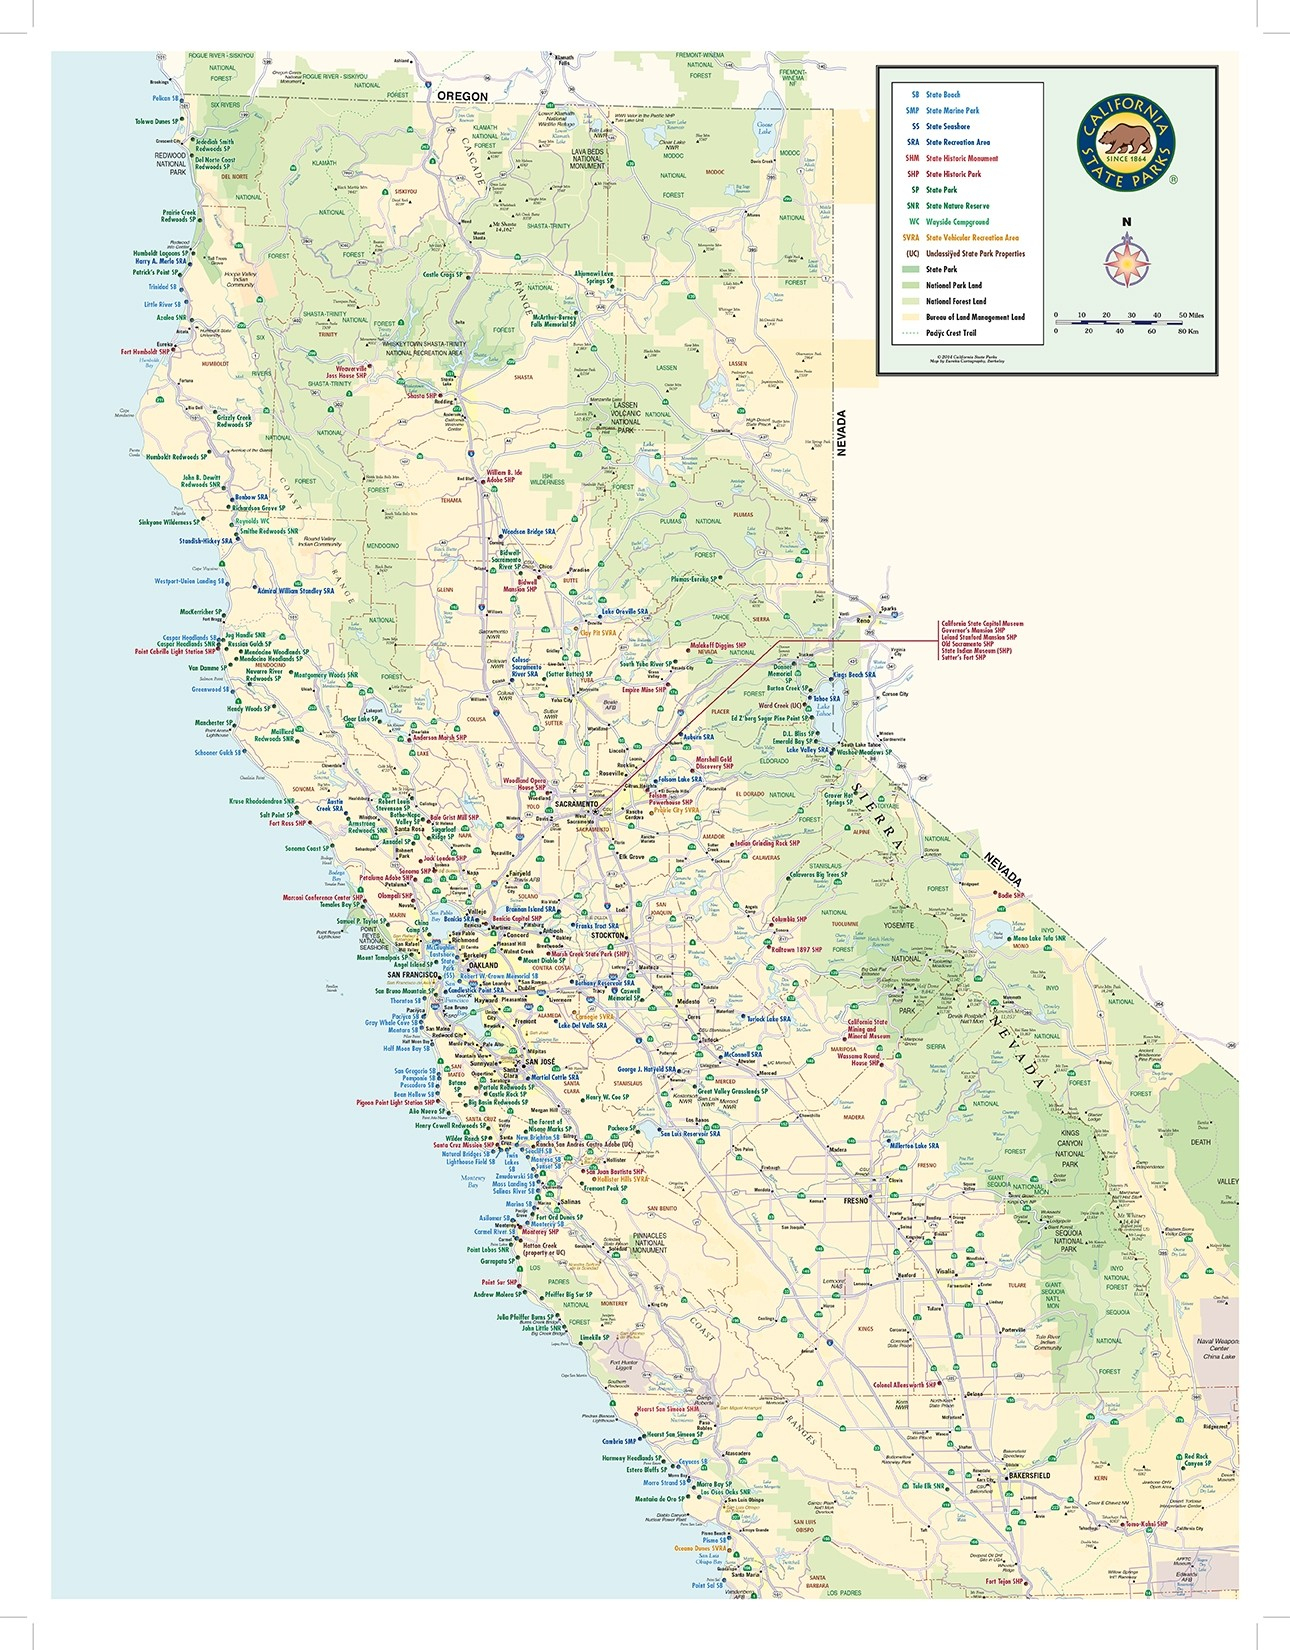 California State Parks Statewide Map - California State Parks Camping Map